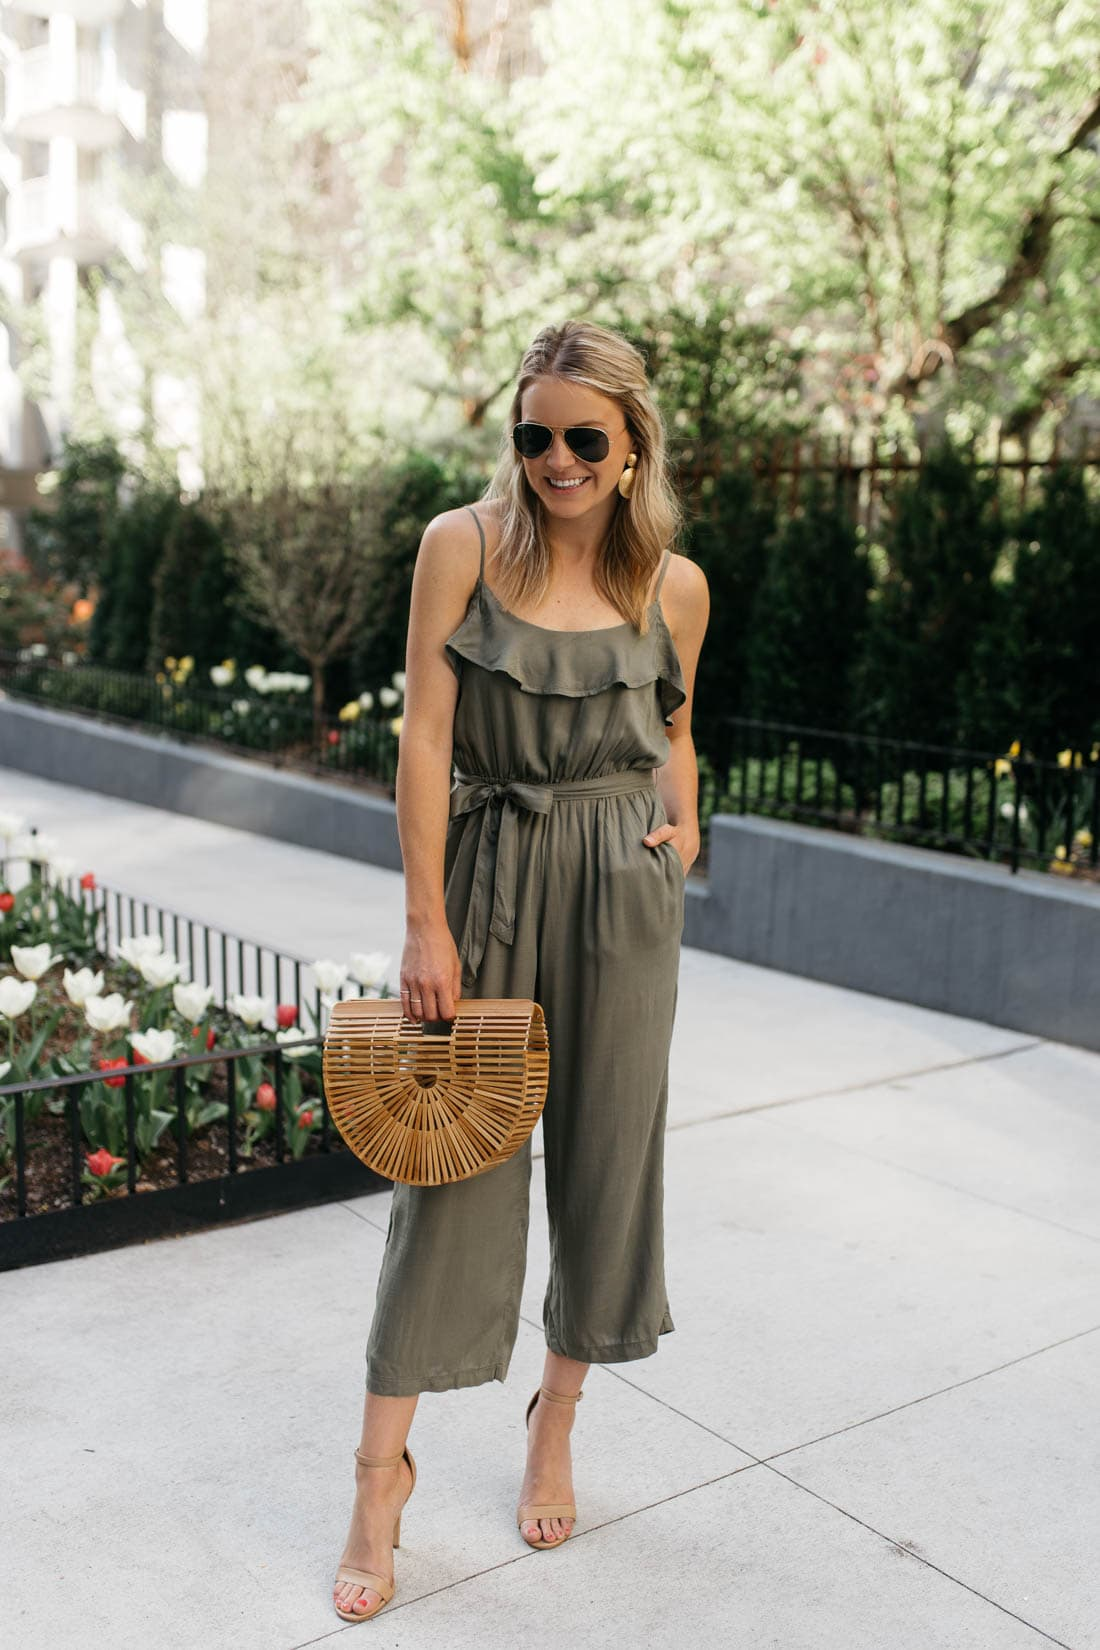 630753e66f2 THE BEST ROMPERS AND JUMPSUITS - Styled Snapshots